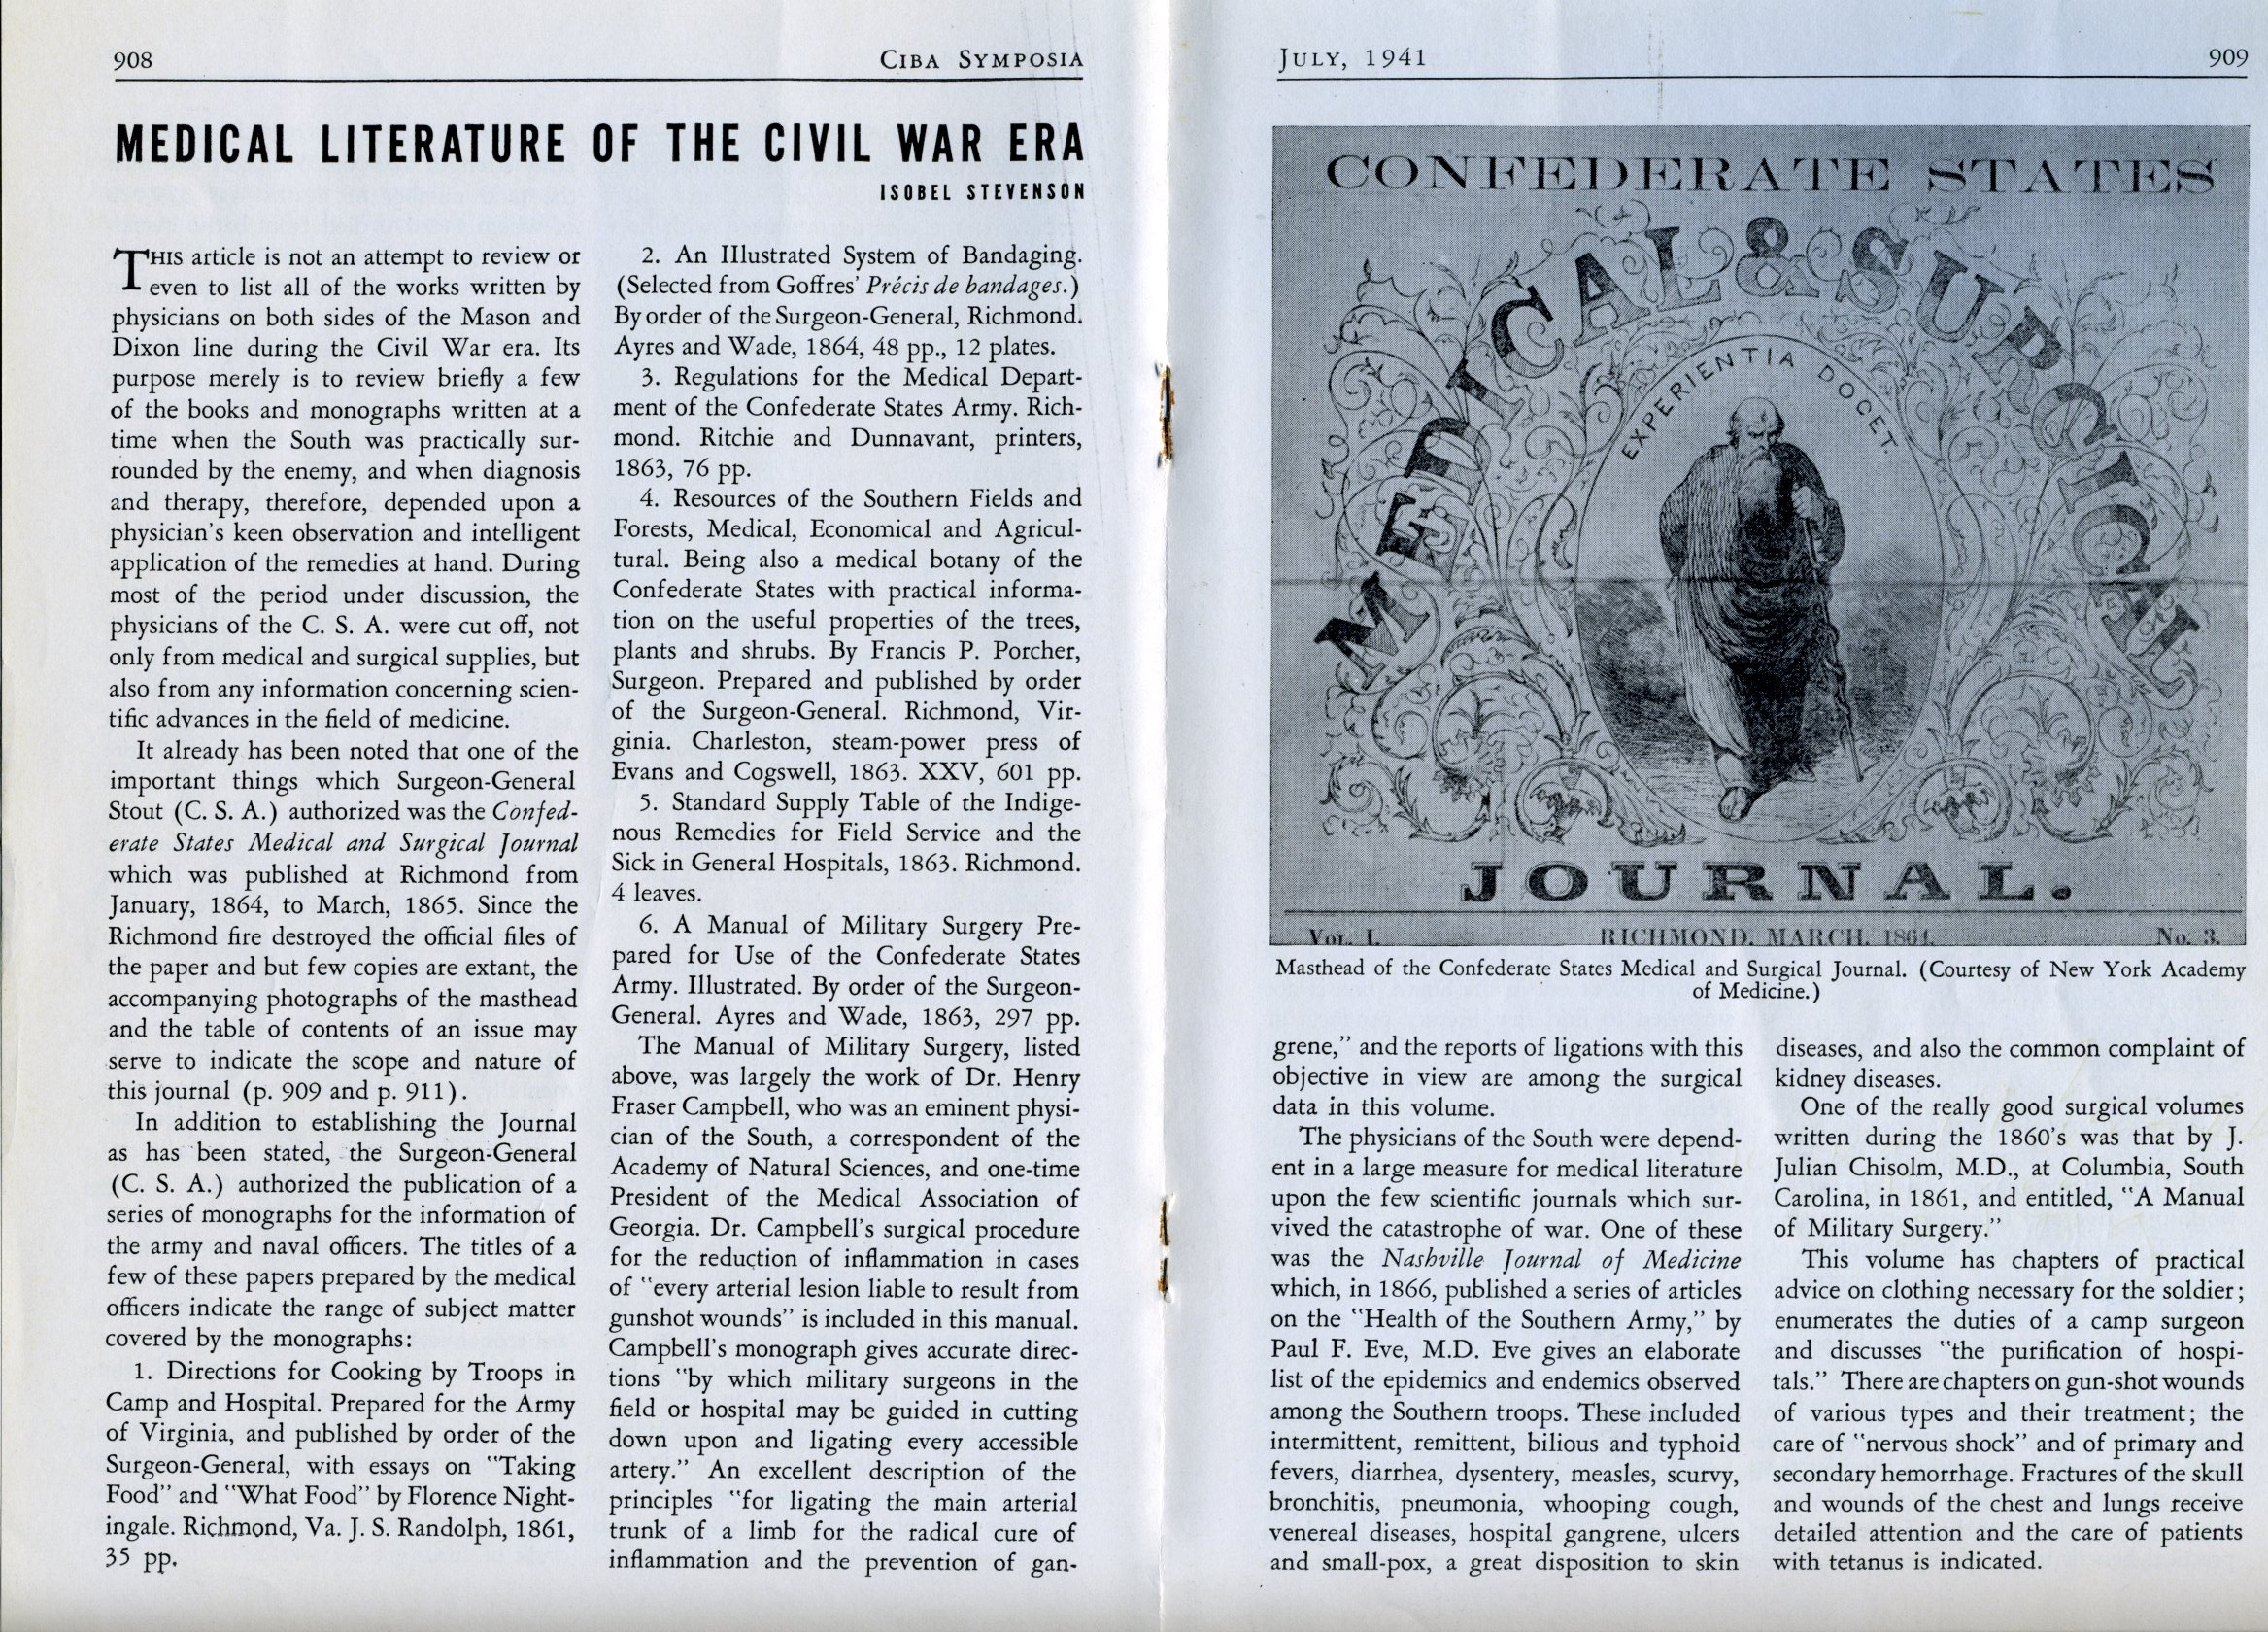 1841 Ciba article on medical education during the Civil War